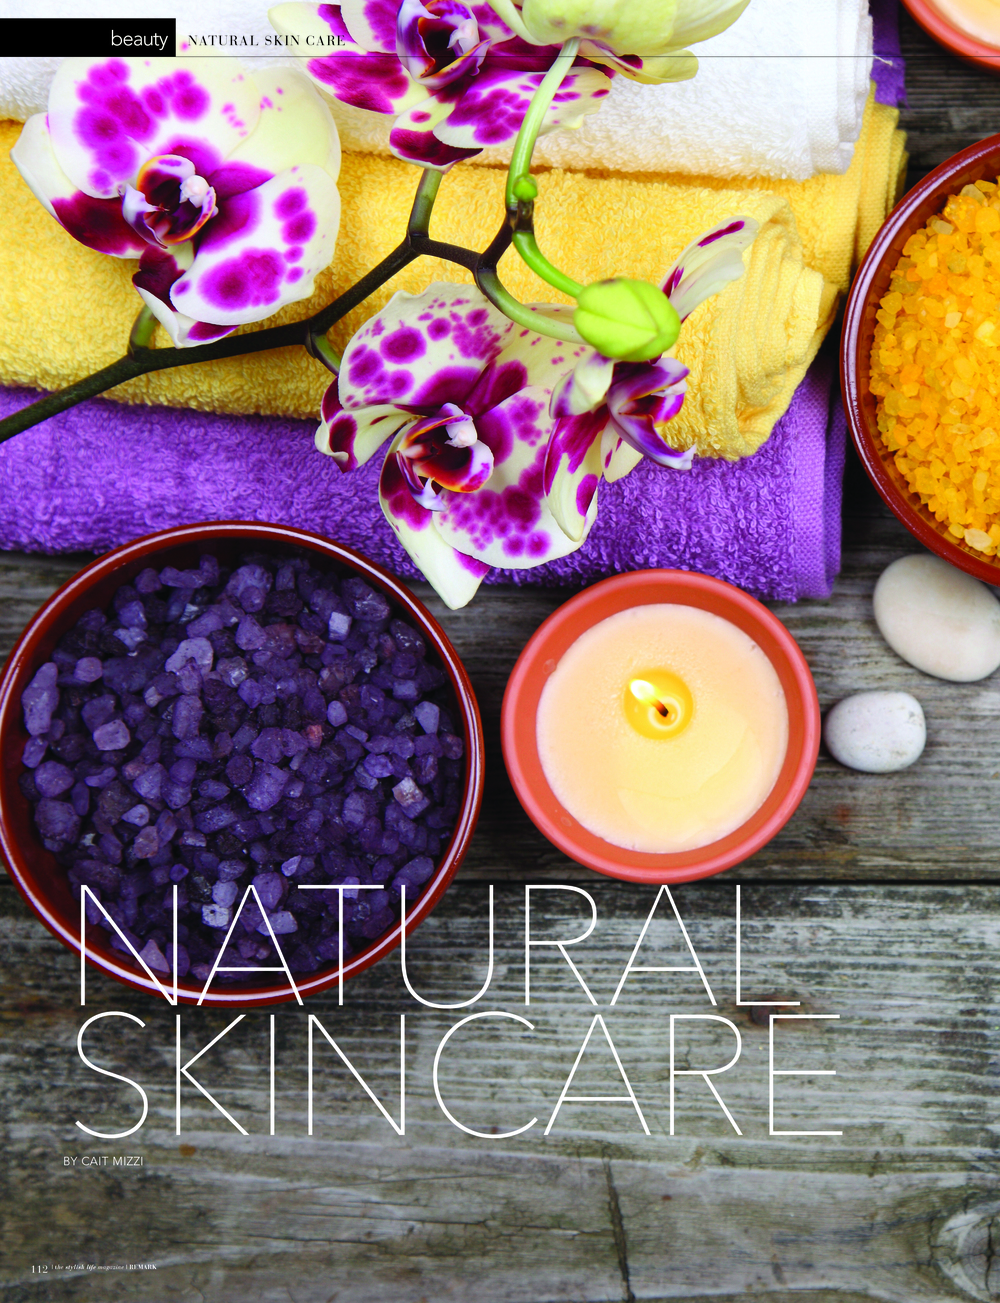 Natural Skin Care - Remark Magazine - March 2014